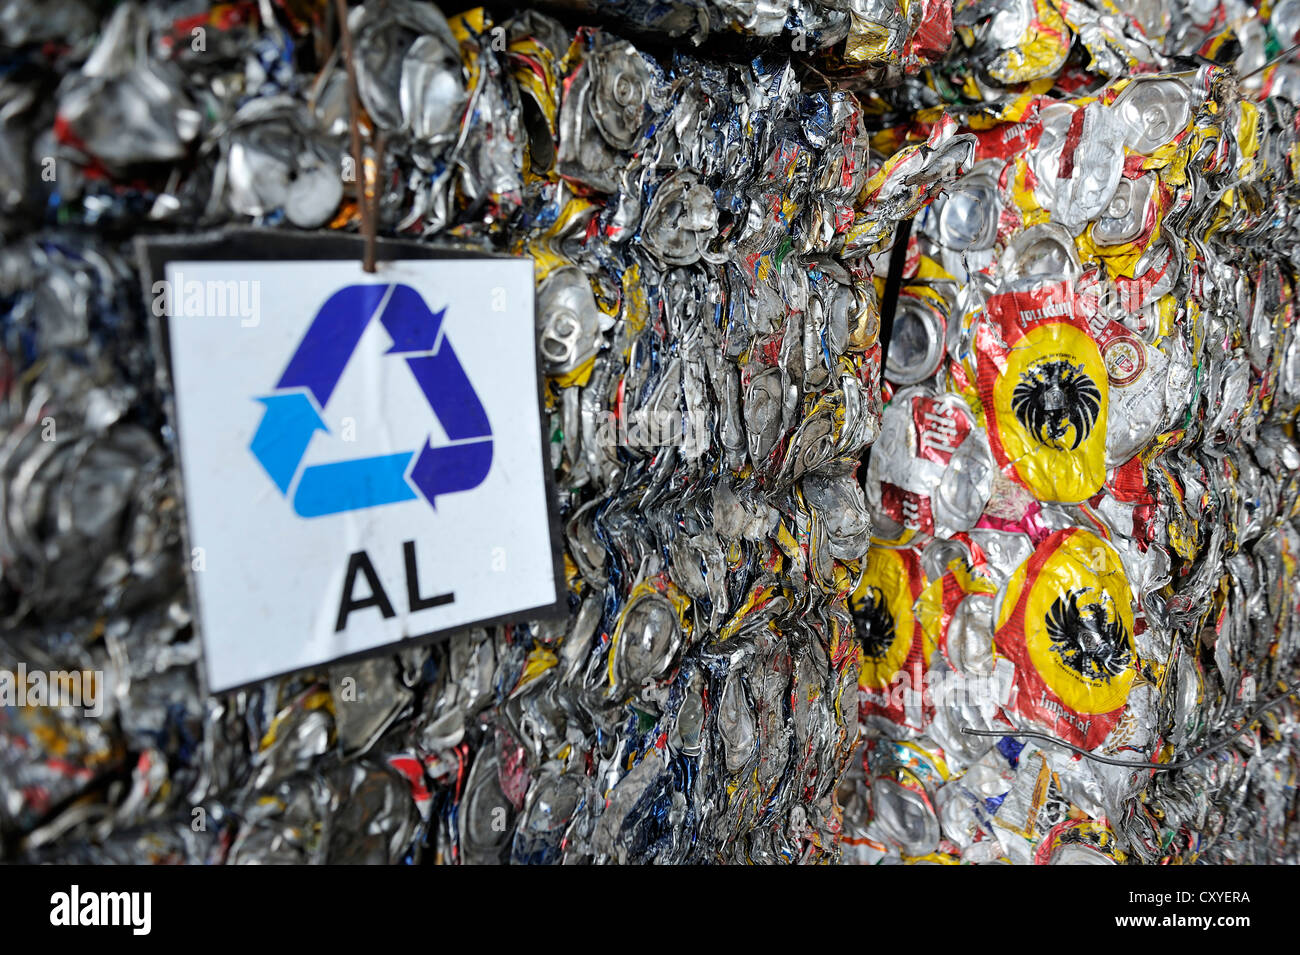 Cans made of tinplate, aluminium, pressed into blocks at a recycling plant, for the export to China, San José, - Stock Image